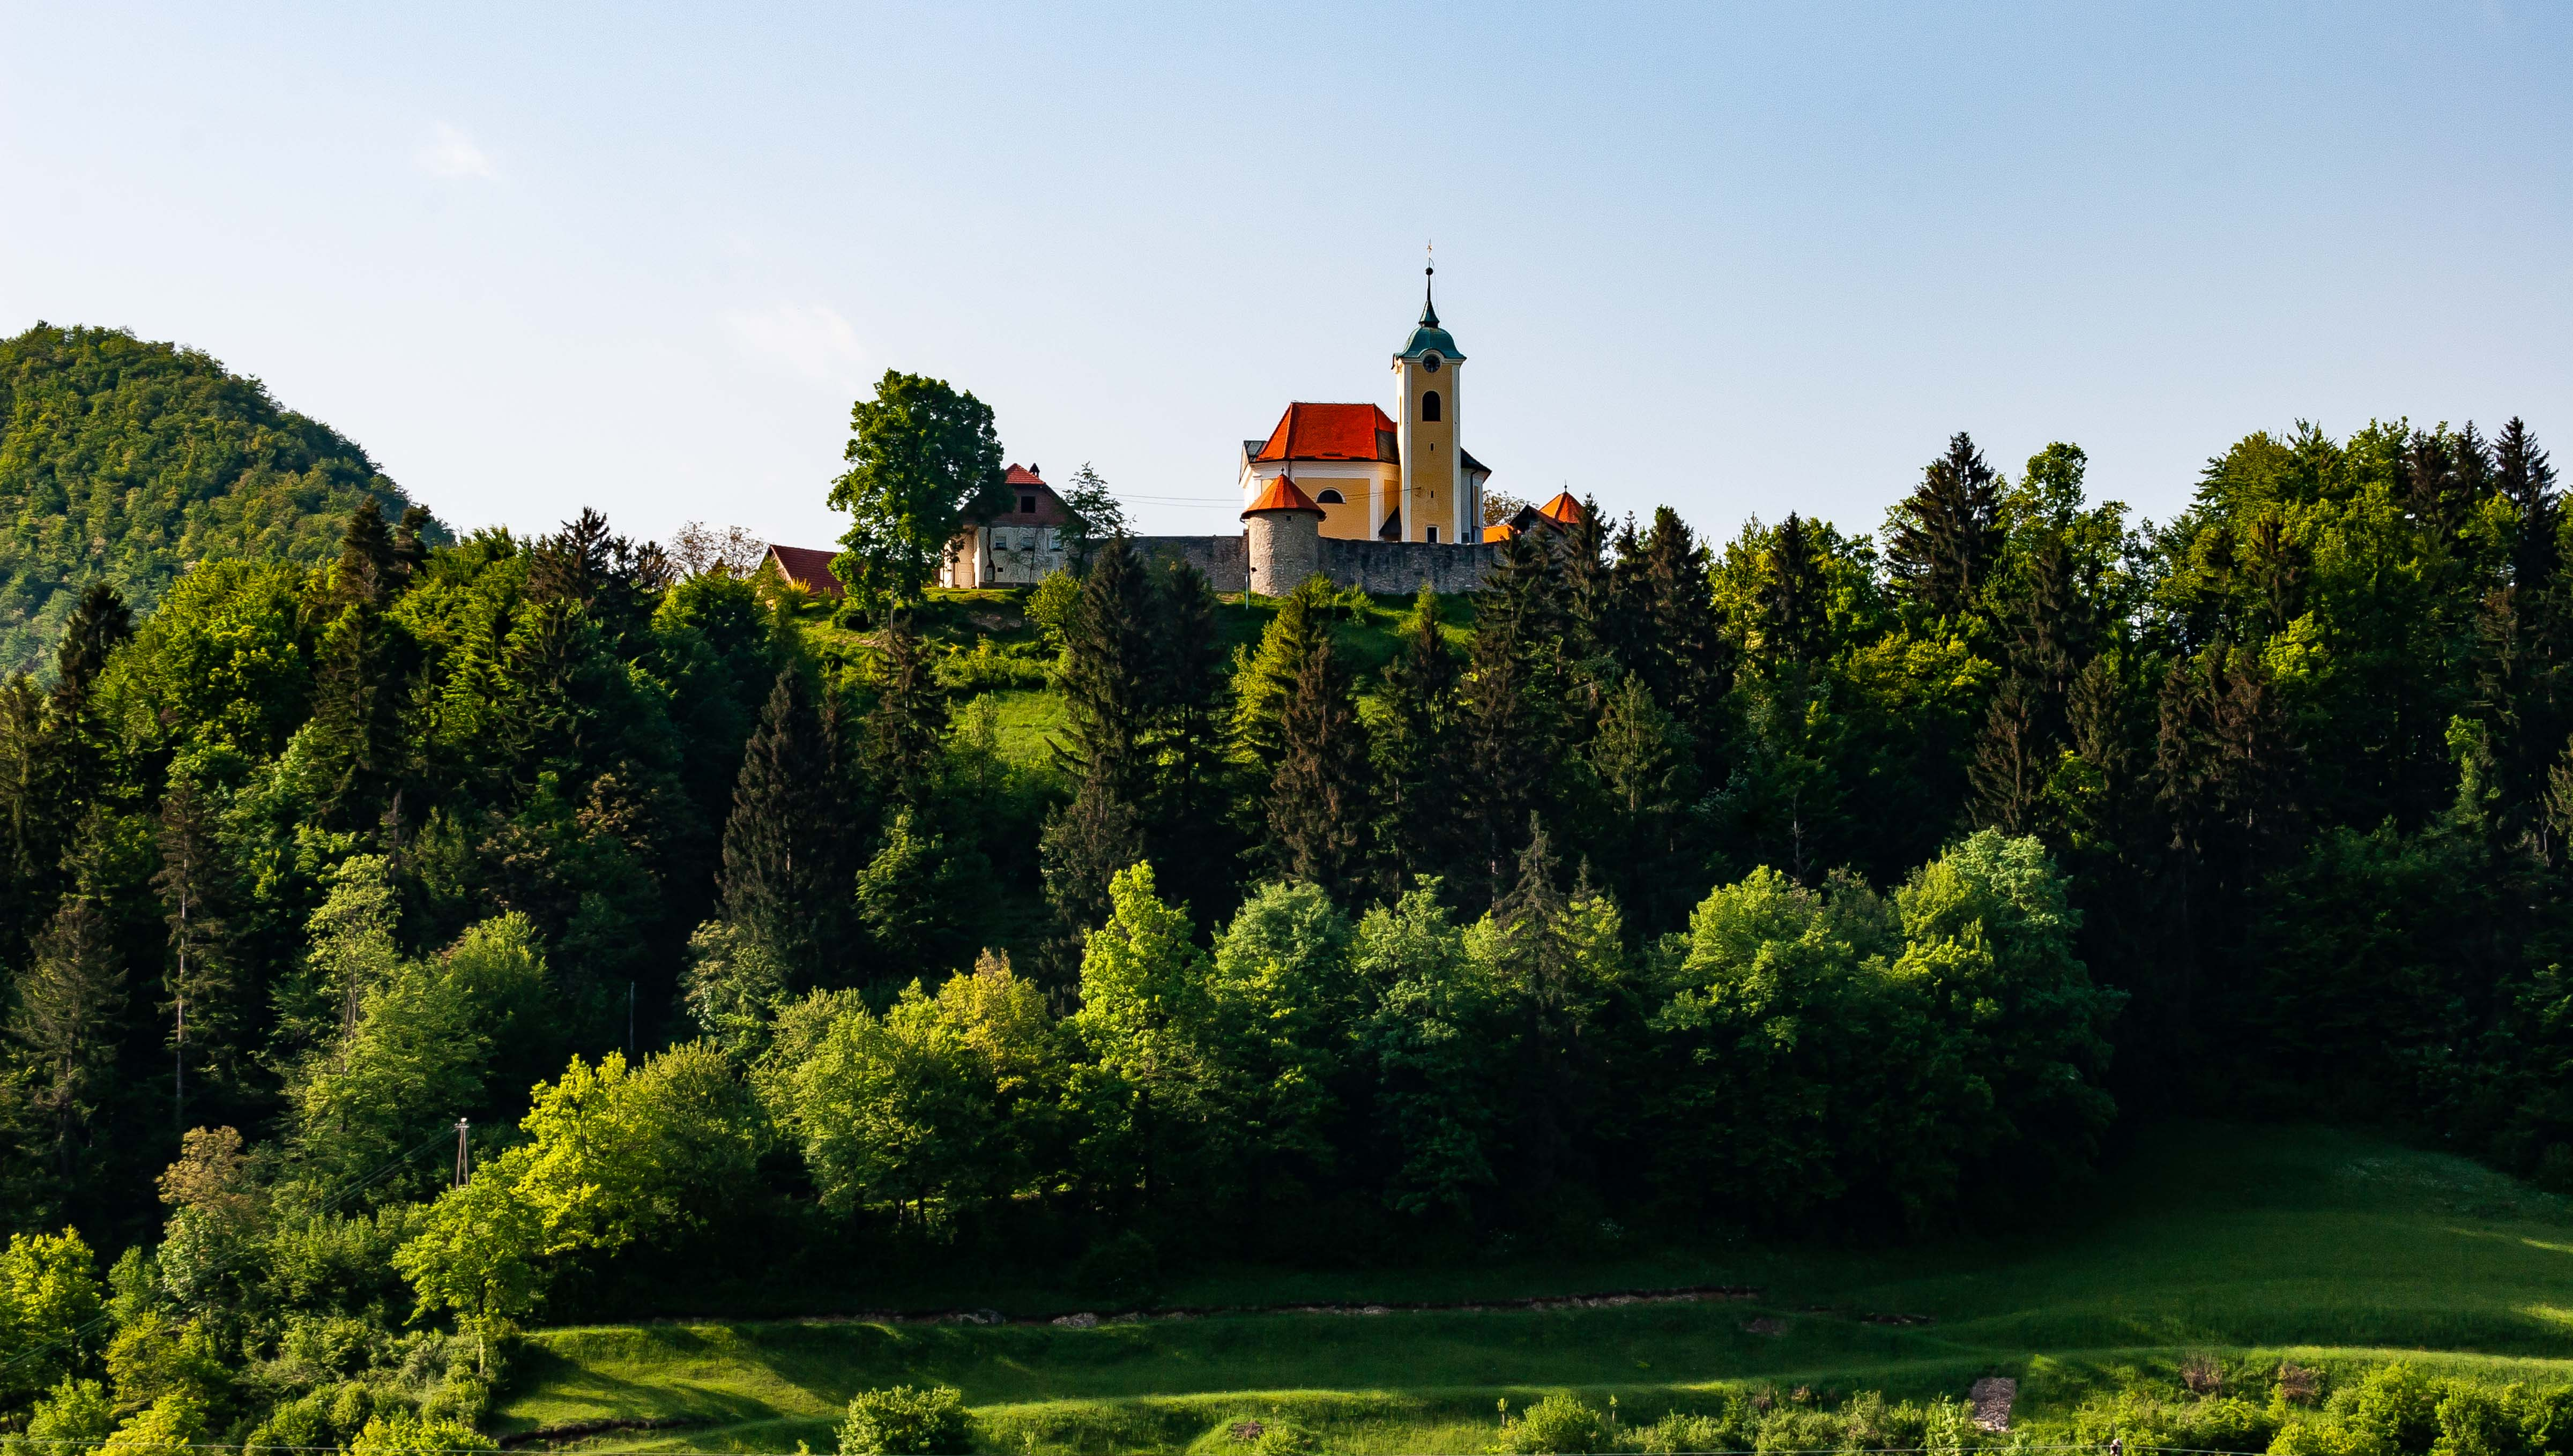 Slovenia, Horjul Prov, Church On A Hill, 2006, IMG 5840